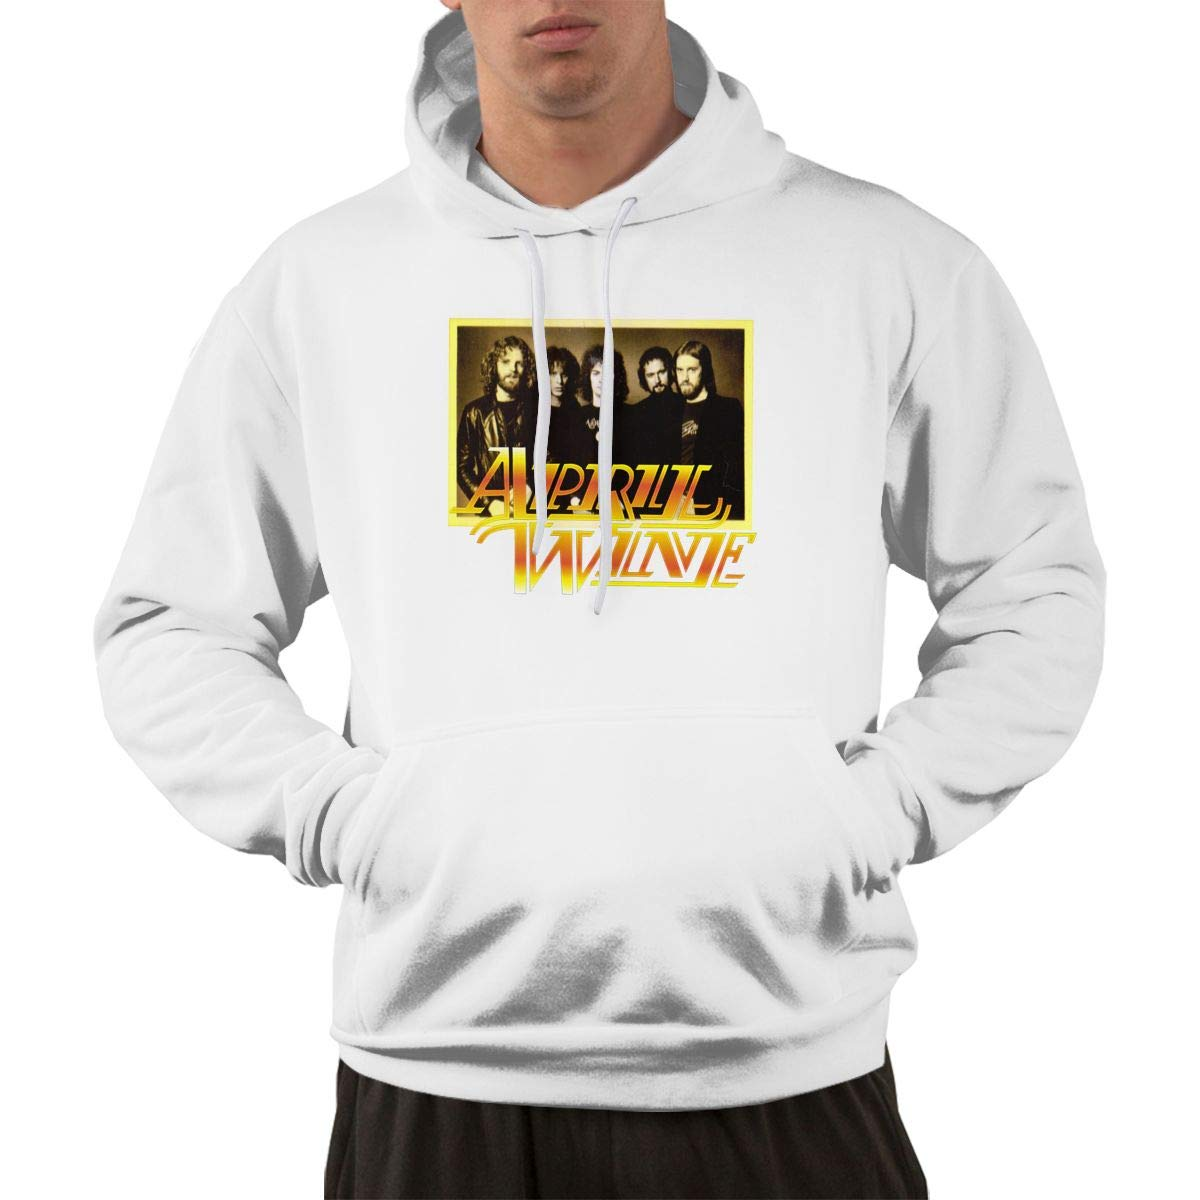 Erman S Pullover Warm Print April Wine 1 Hooded Shirts With Pocket 3